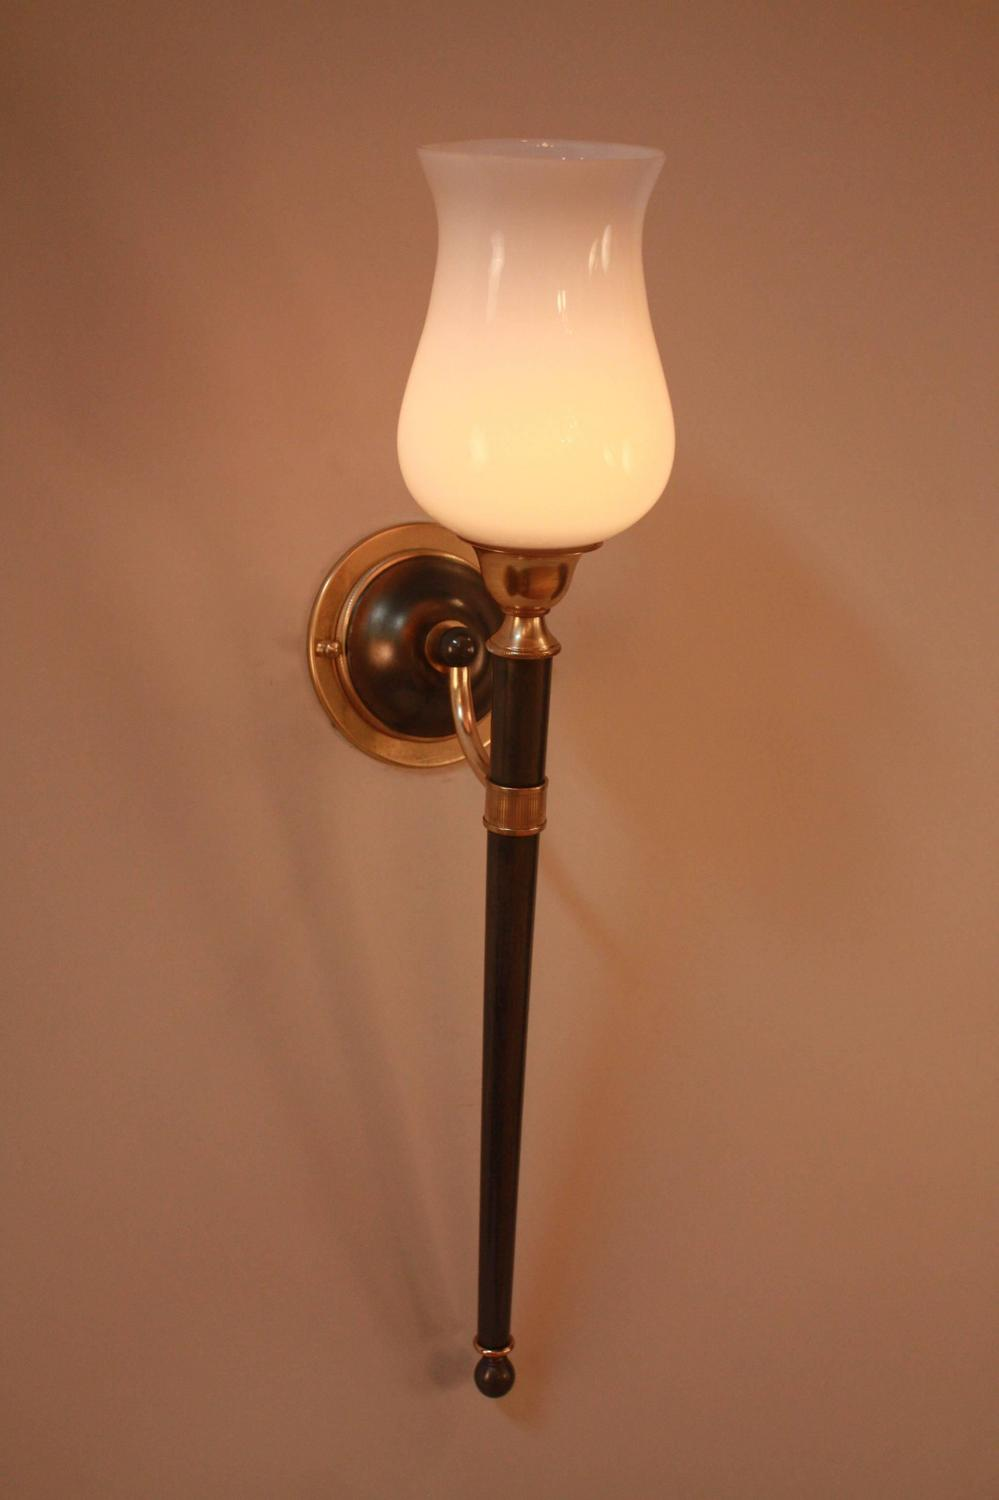 Pair of Torchiere Wall Sconces by Maison Jansen For Sale at 1stdibs